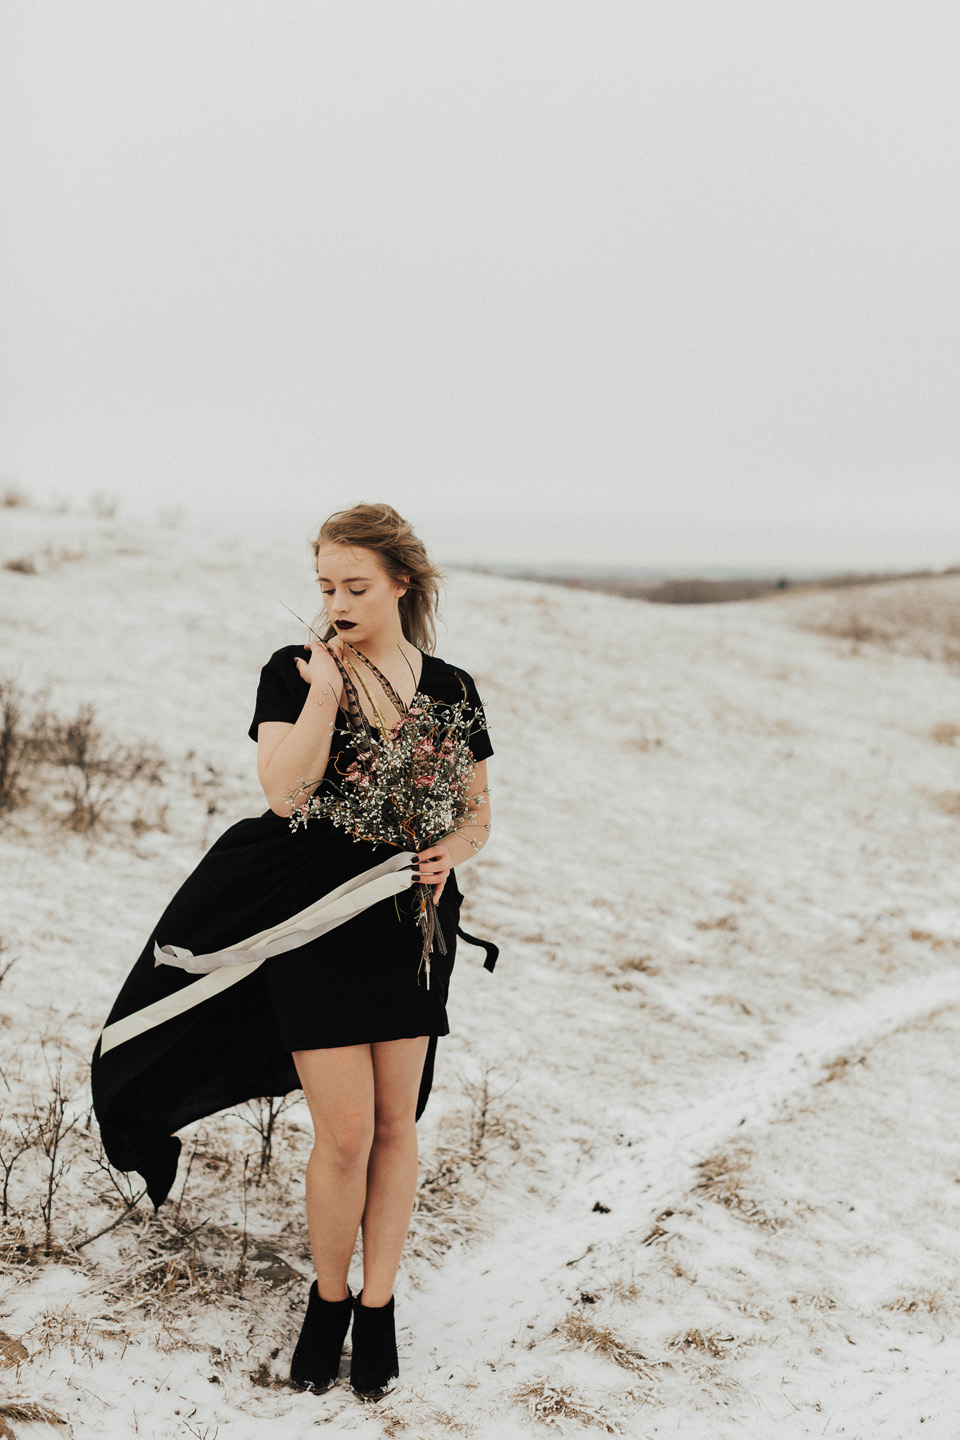 Moody Winter Bridals Edmonton Portrait and Wedding Photographer - Michelle Larmand Photography -019